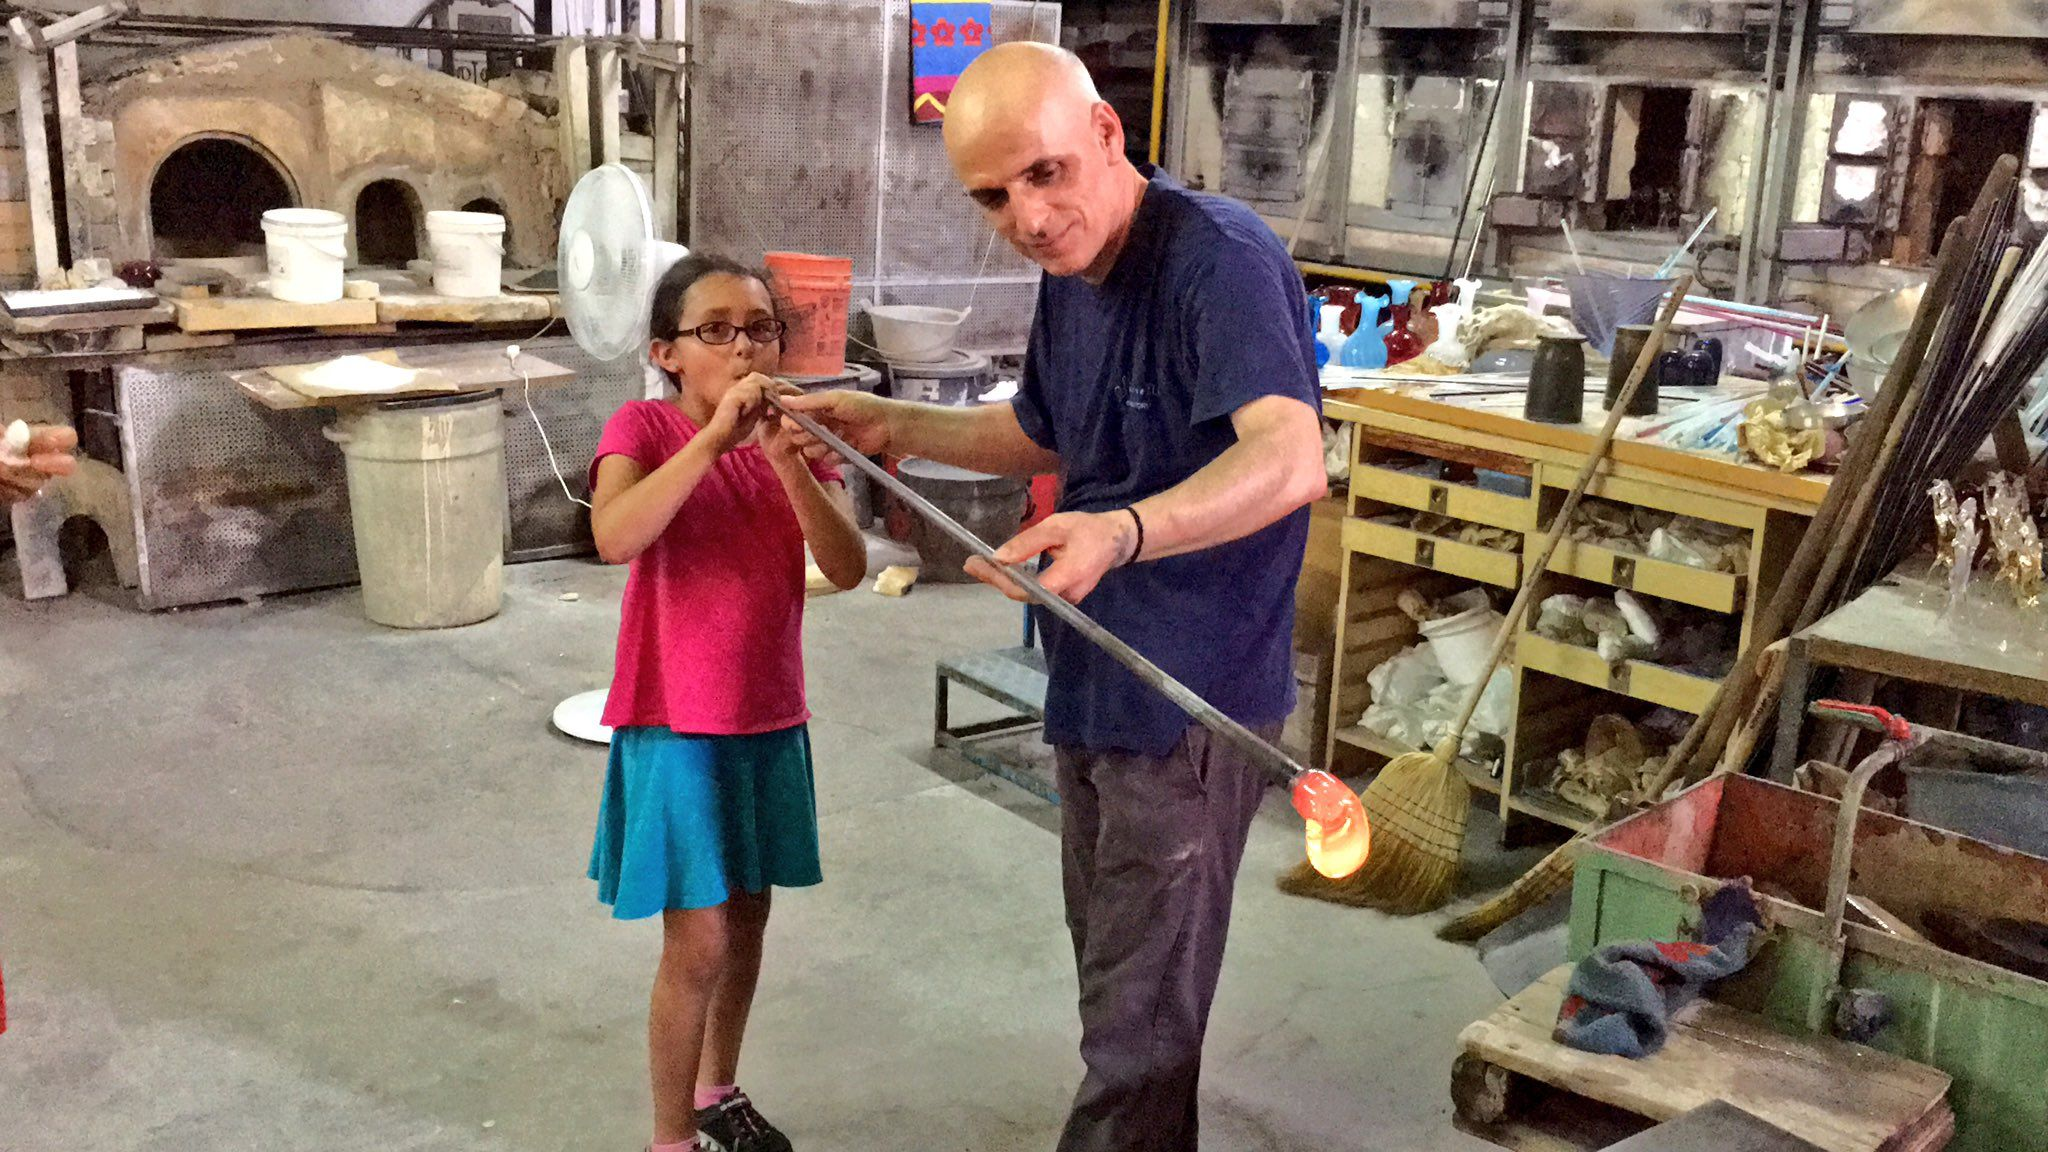 Visiting the world famous Signoretti glass factory in #Venice #Italy! https://t.co/XUC0vMAEyg